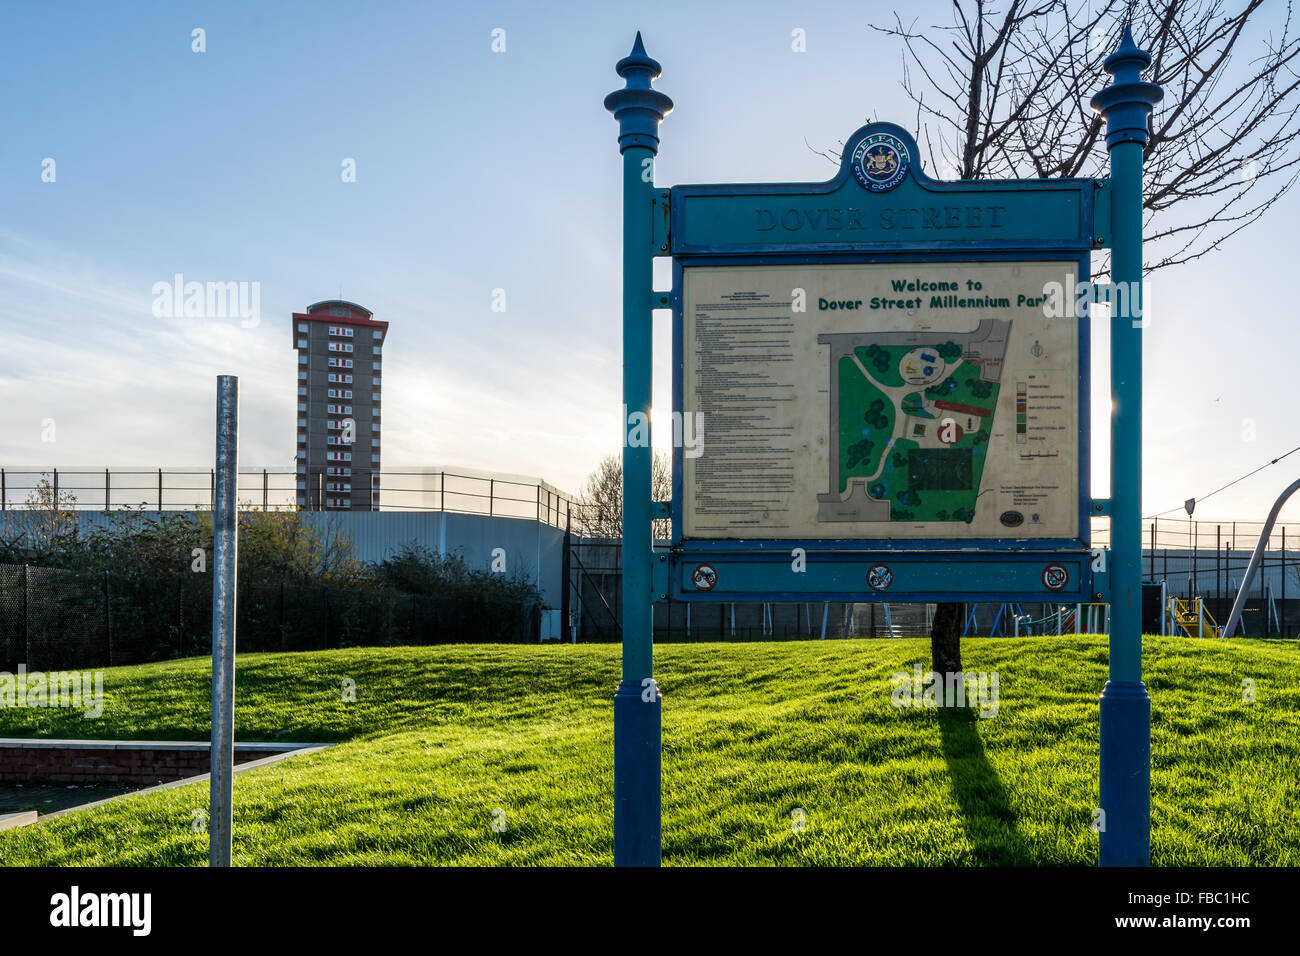 Dover Street play park in Shankill Road Belfast with Divis Tower in background. - Stock Image